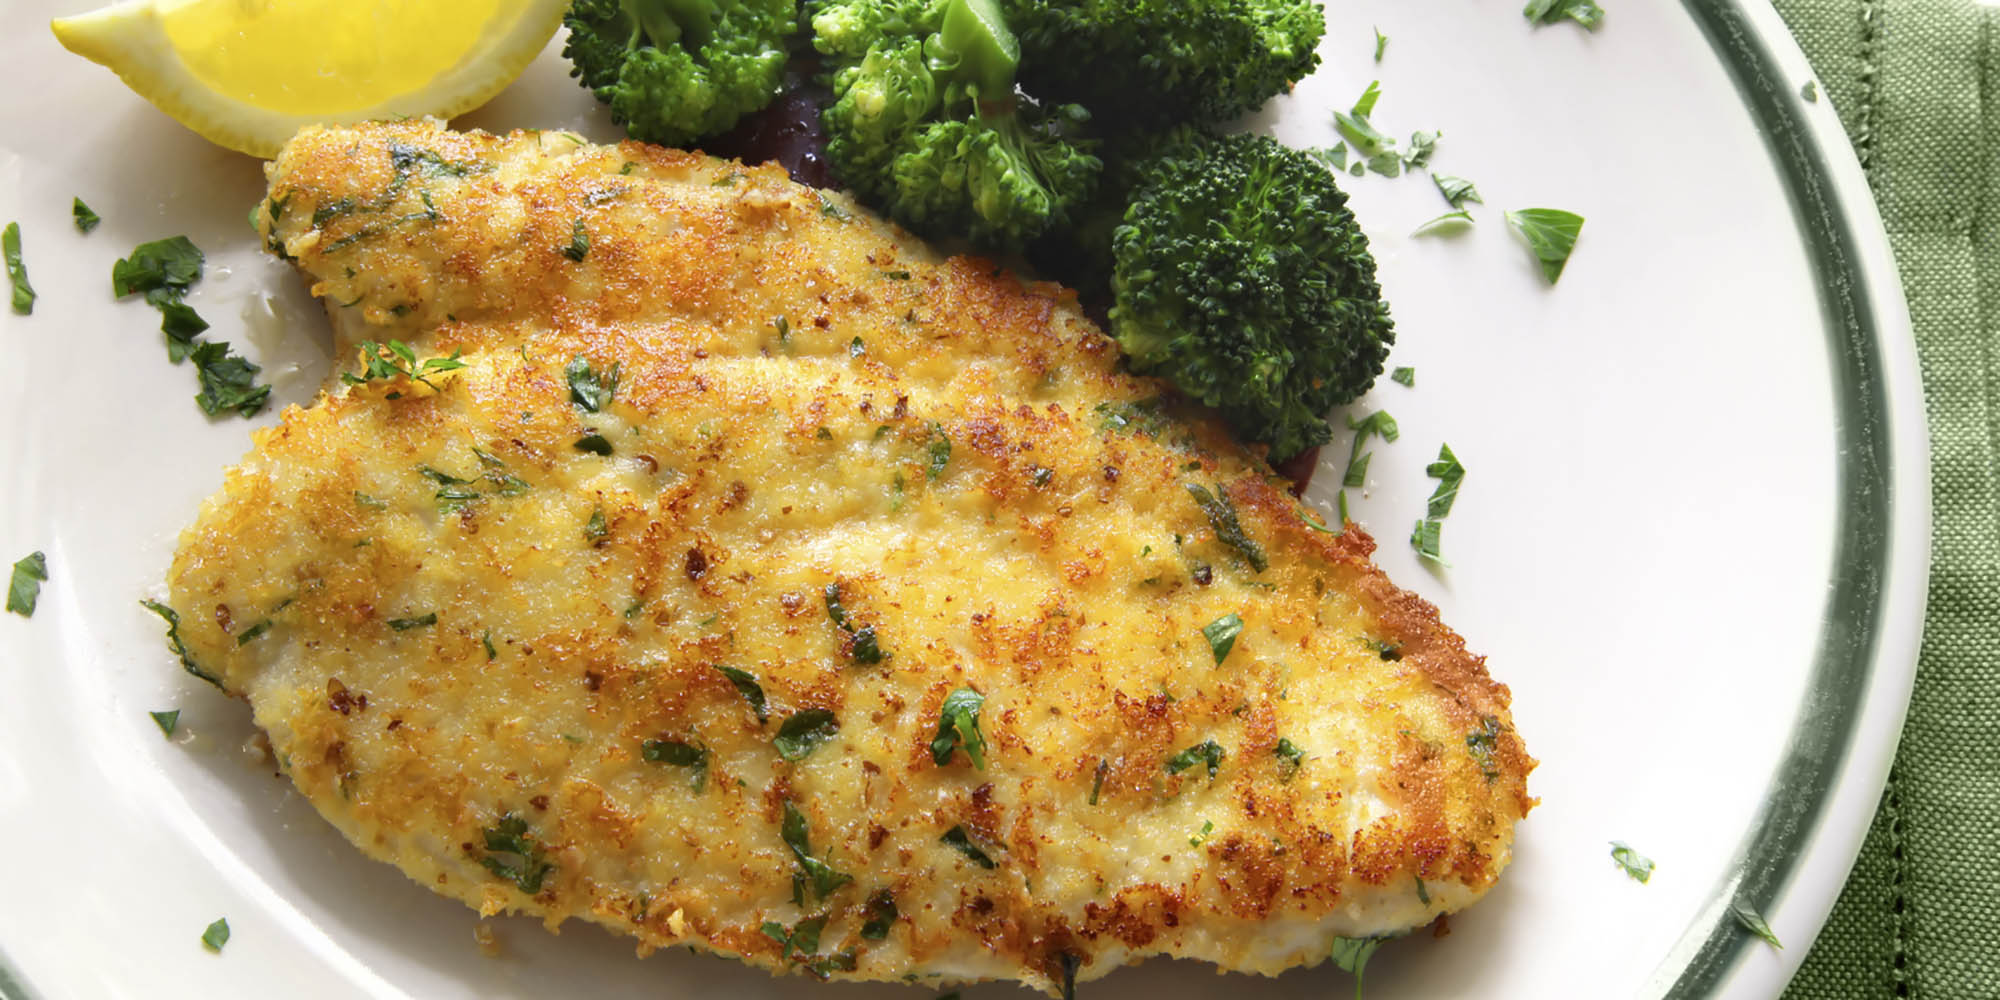 How to Make Healthier Versions of Fried Foods